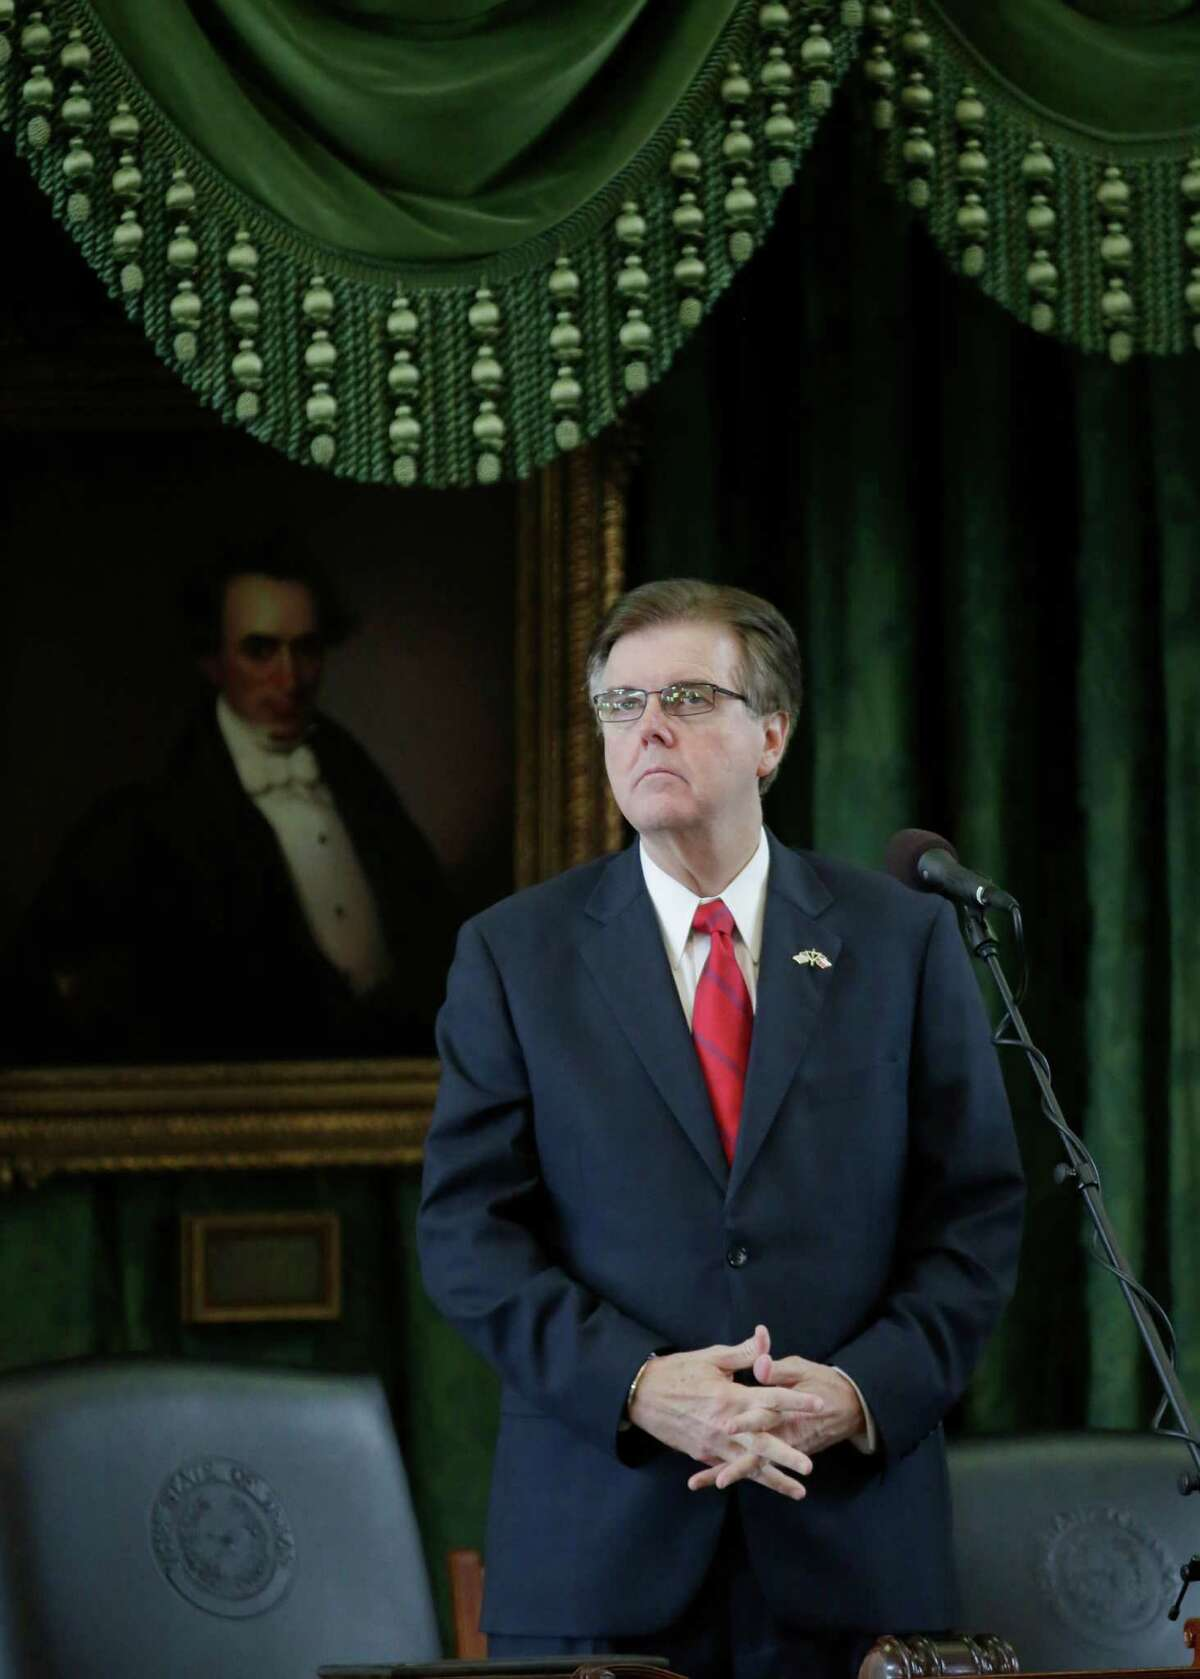 Texas Lt. Gov. Dan Patrick in the Senate Chamber. (AP Photo/Eric Gay)